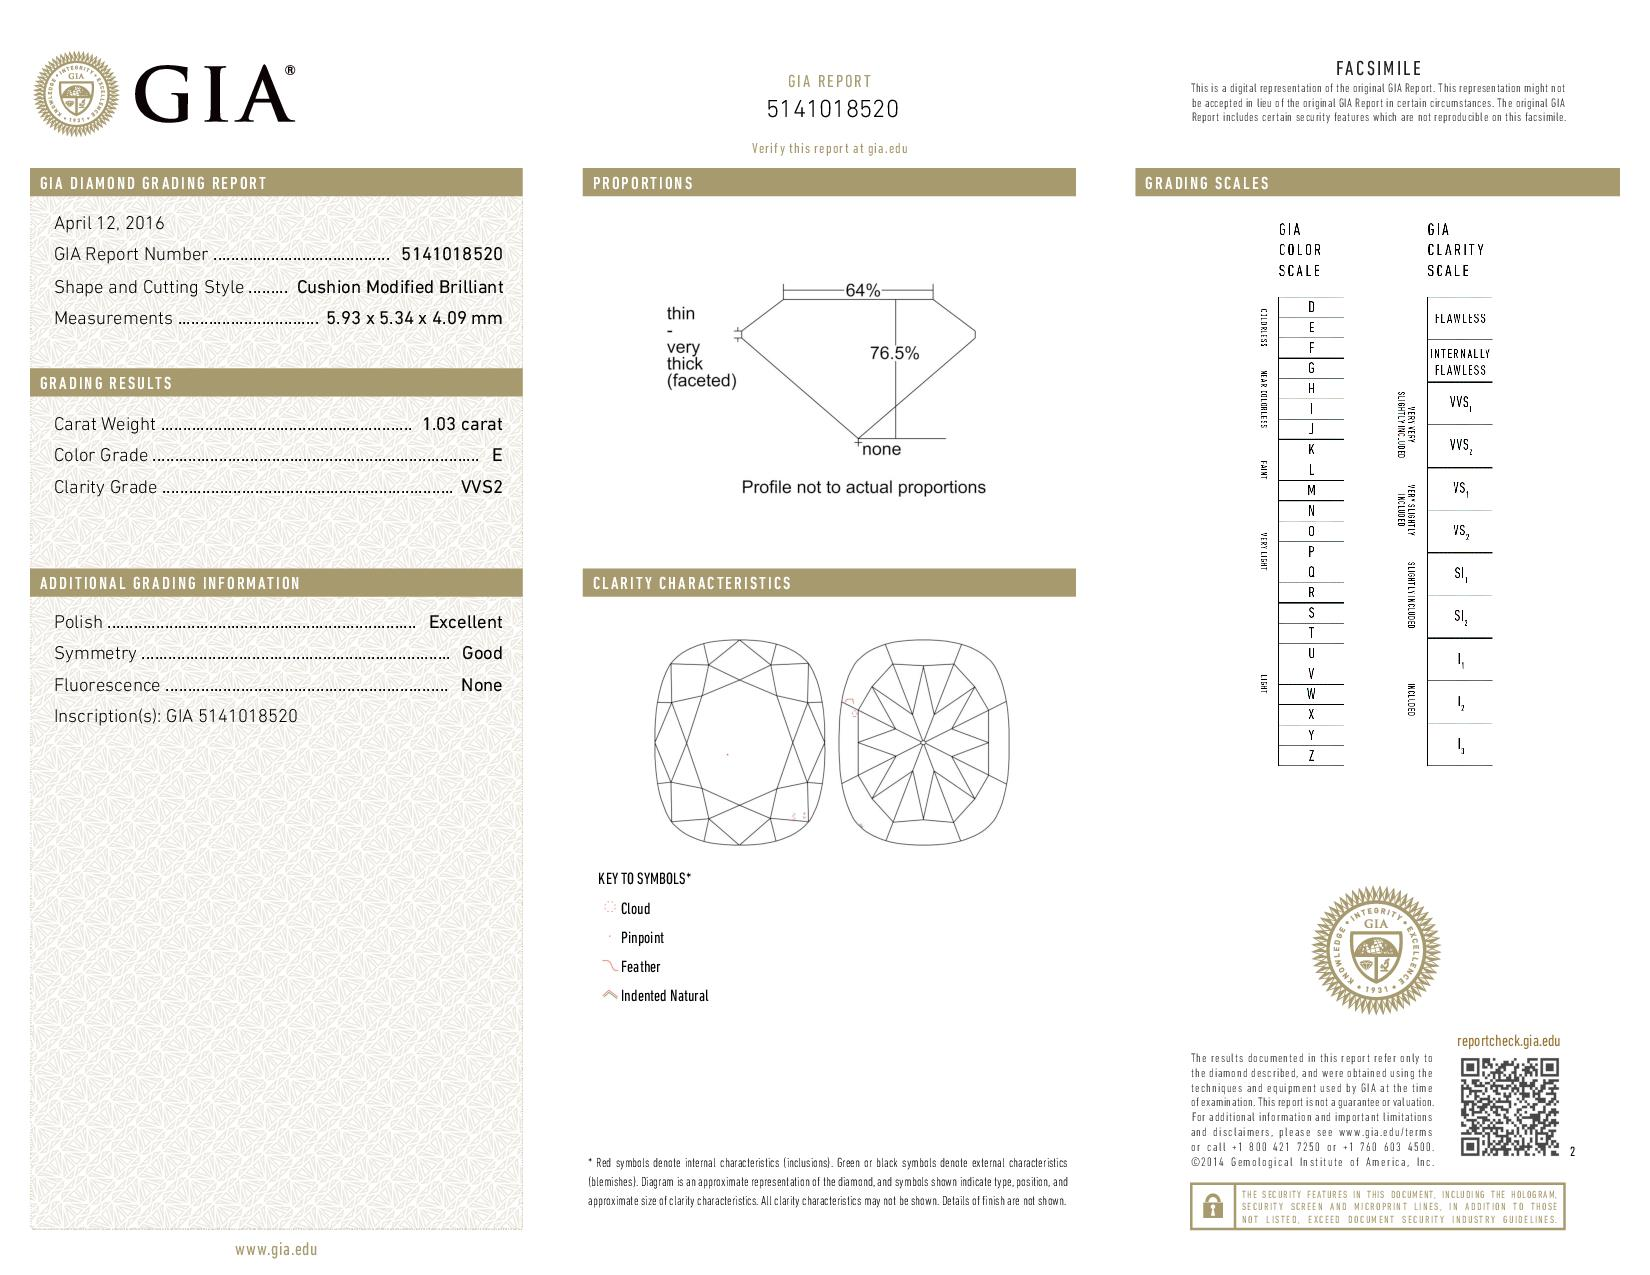 This is a 1.03 carat cushion shape, E color, VVS2 clarity natural diamond accompanied by a GIA grading report.